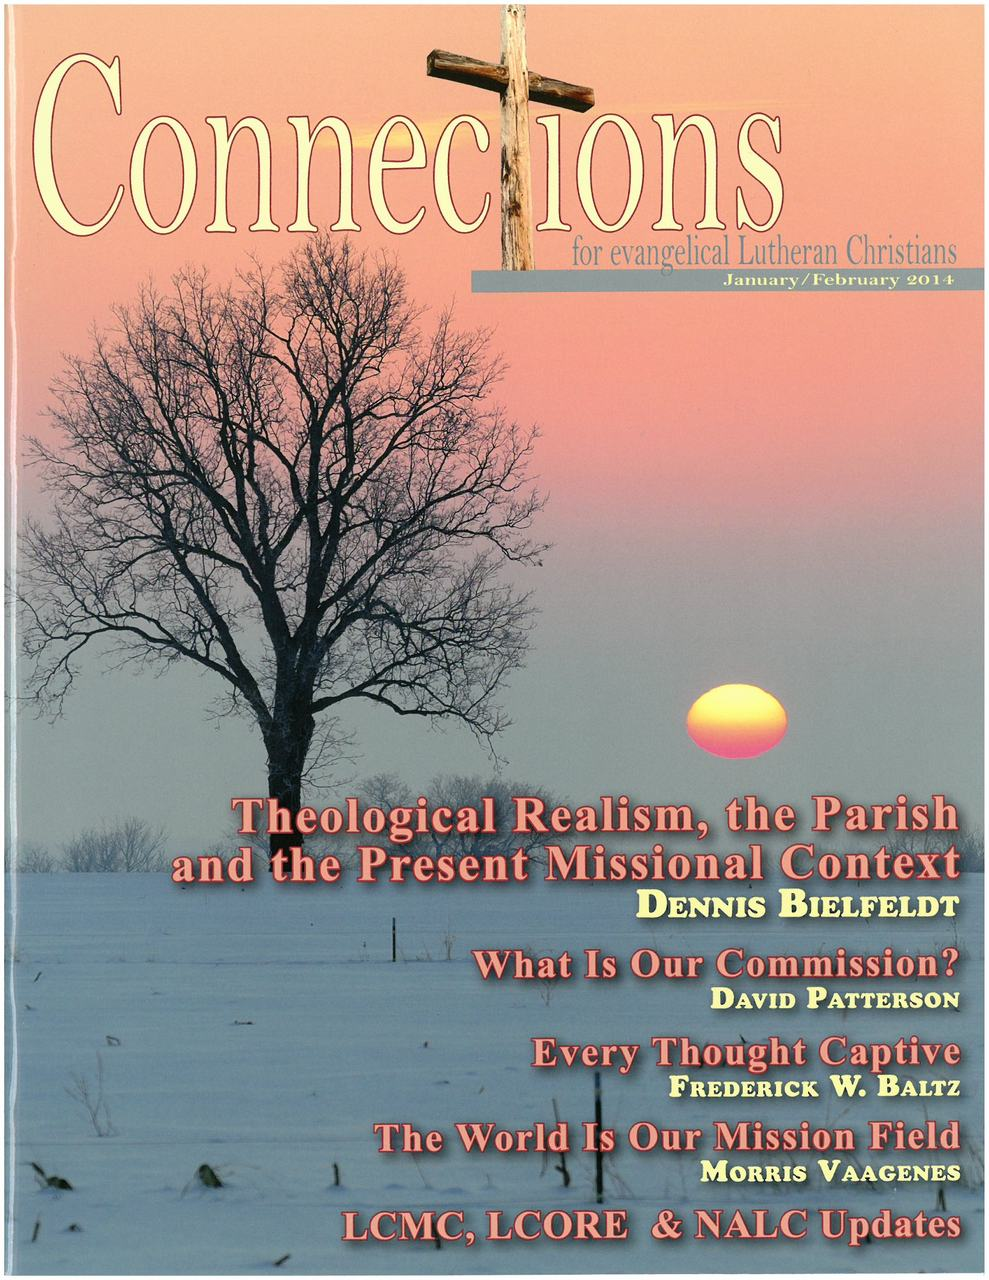 Connections Back Issue Jan/Feb '14 P-D141